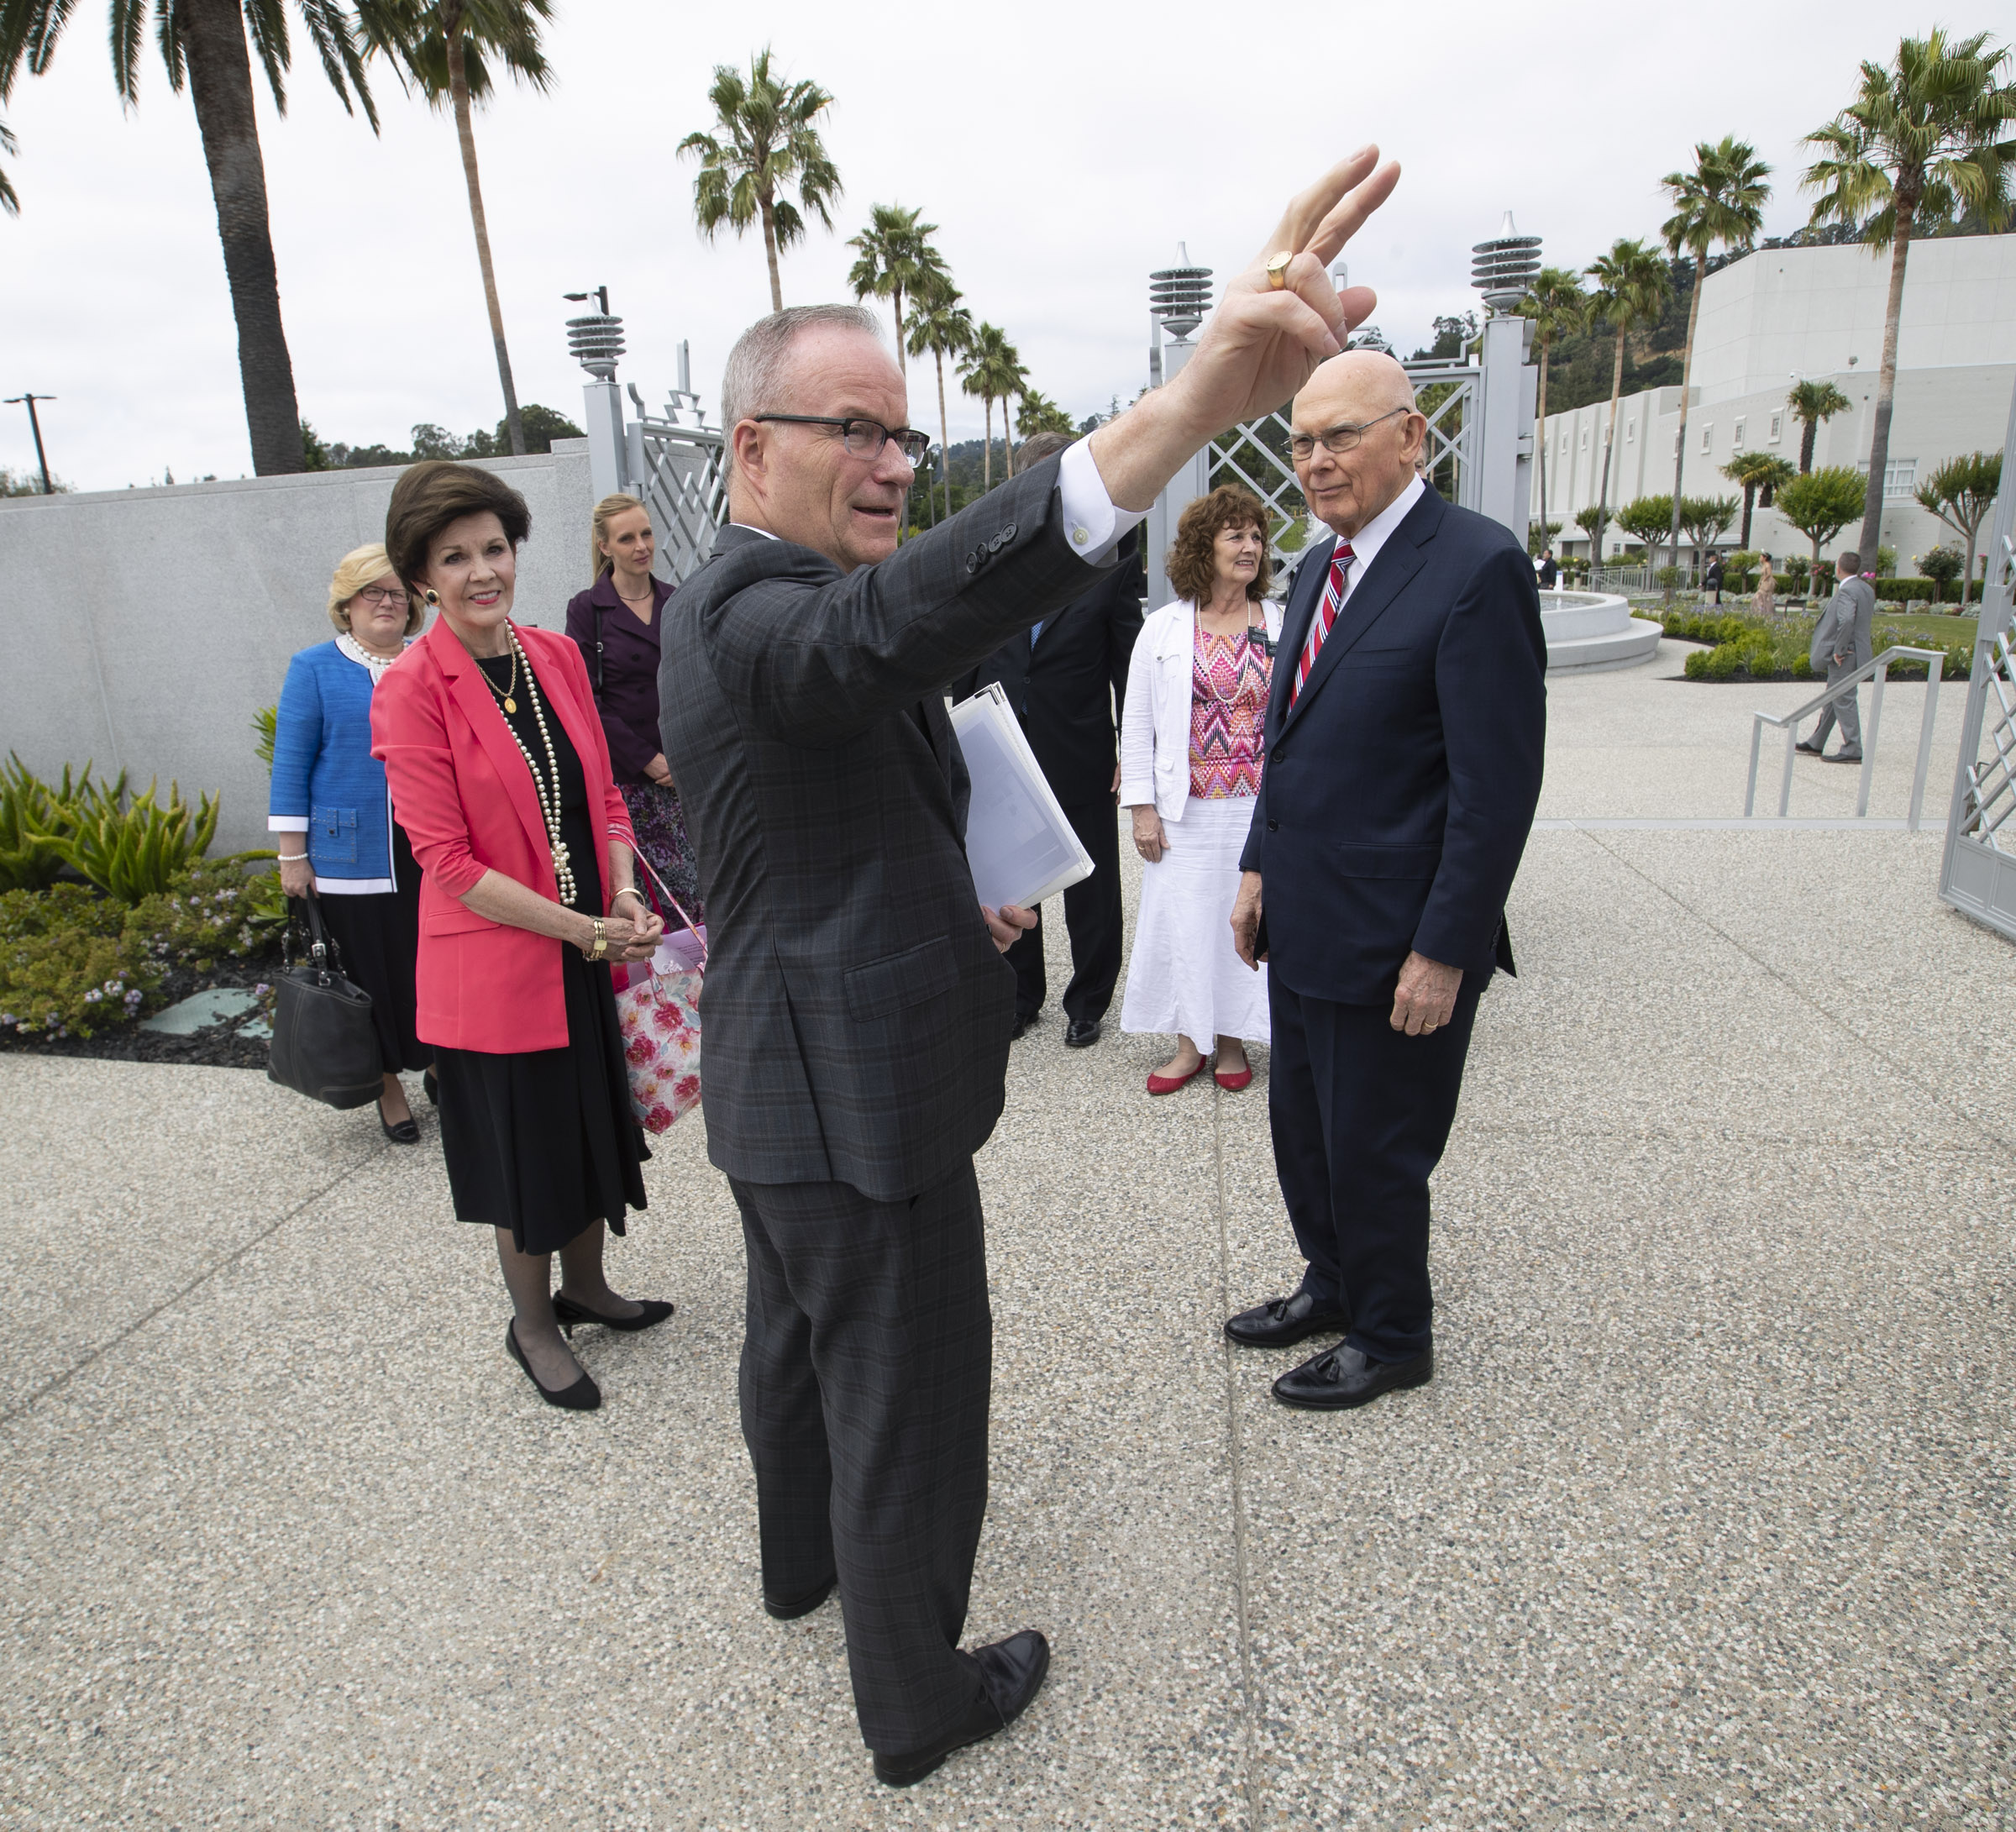 Thomas E. Coburn, managing director of the Temple Department, points out new areas of the Oakland California Temple as President Dallin H. Oaks, first counselor in the First Presidency, and his wife, Sister Kristen Oaks, arrive for a walk-through on Saturday, June 15, 2019.